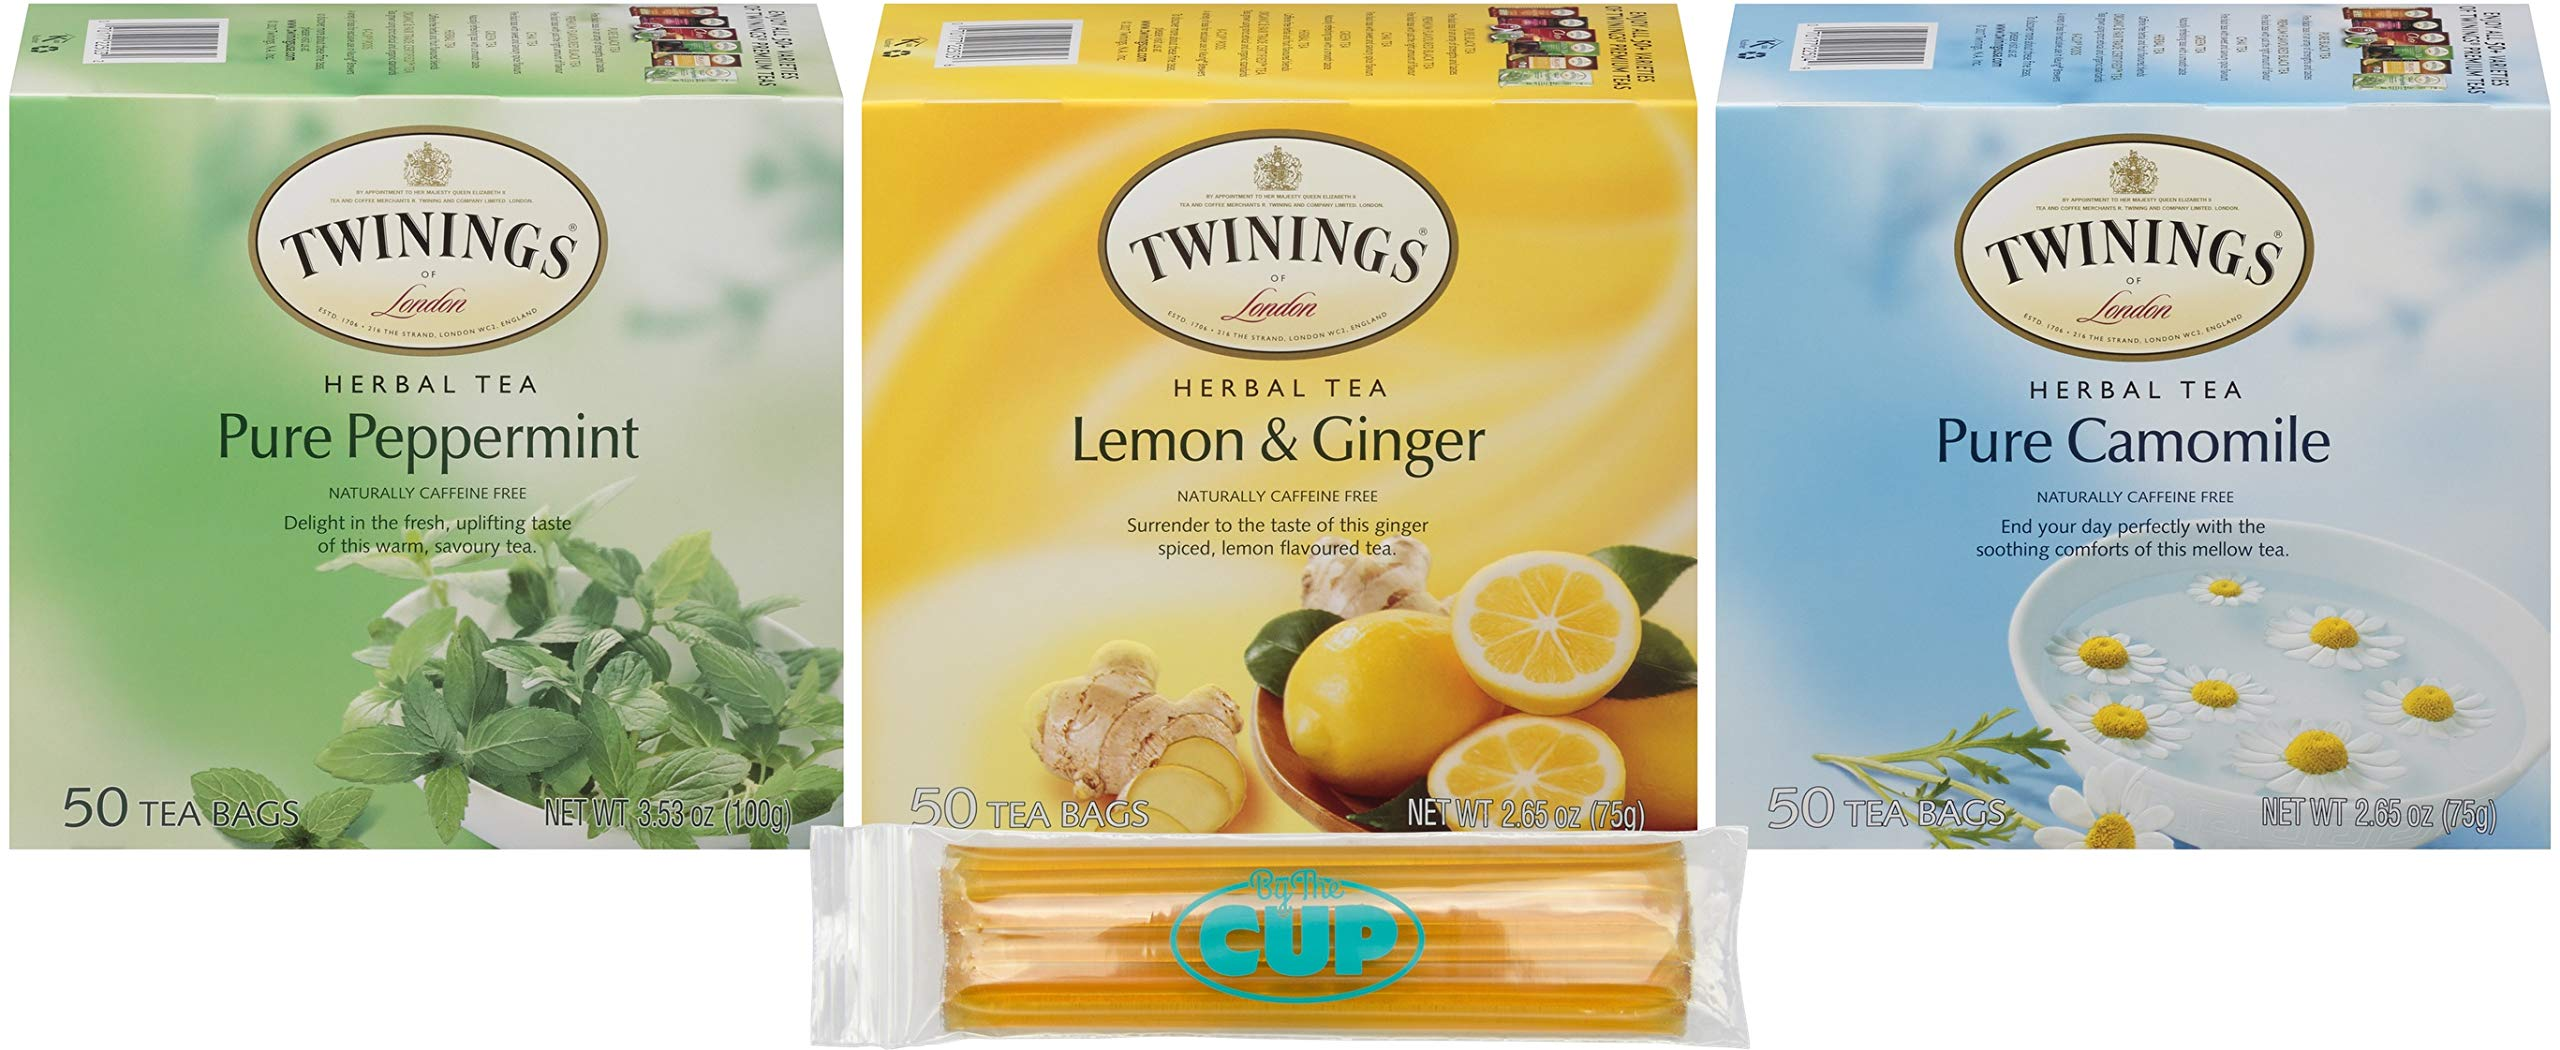 Twinings Tea 3 Flavor Herbal Tea Sampler 50 Count Box of Each Pure Peppermint, Lemon Ginger, and Camomile with By The Cup Honey Sticks